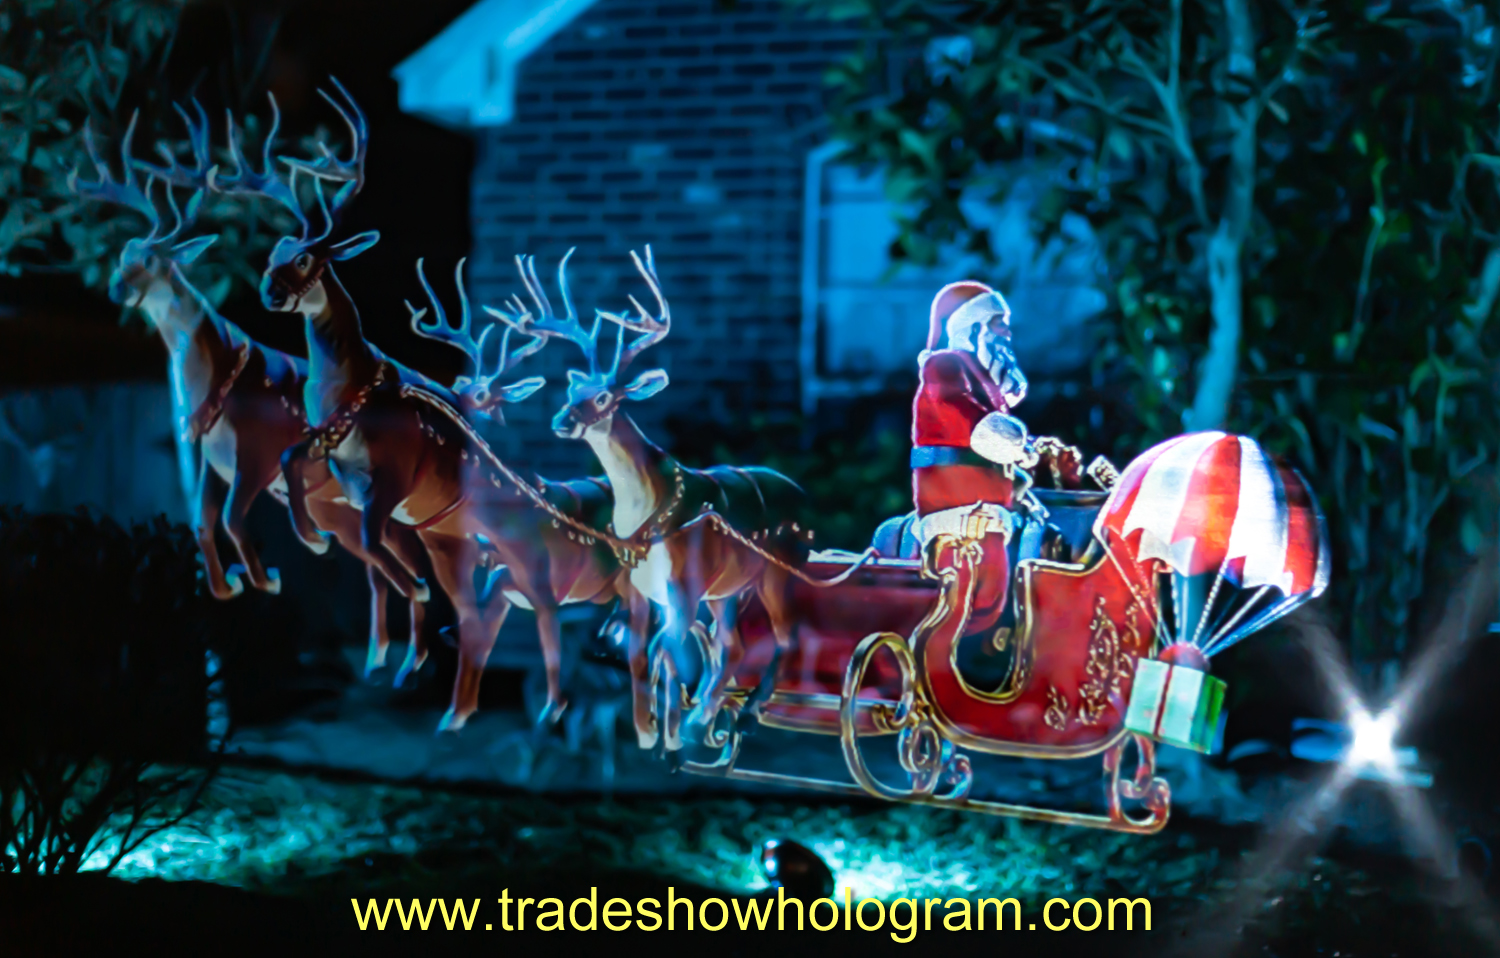 Texas, hologram, projection, christmas, outdoor, animated, santa